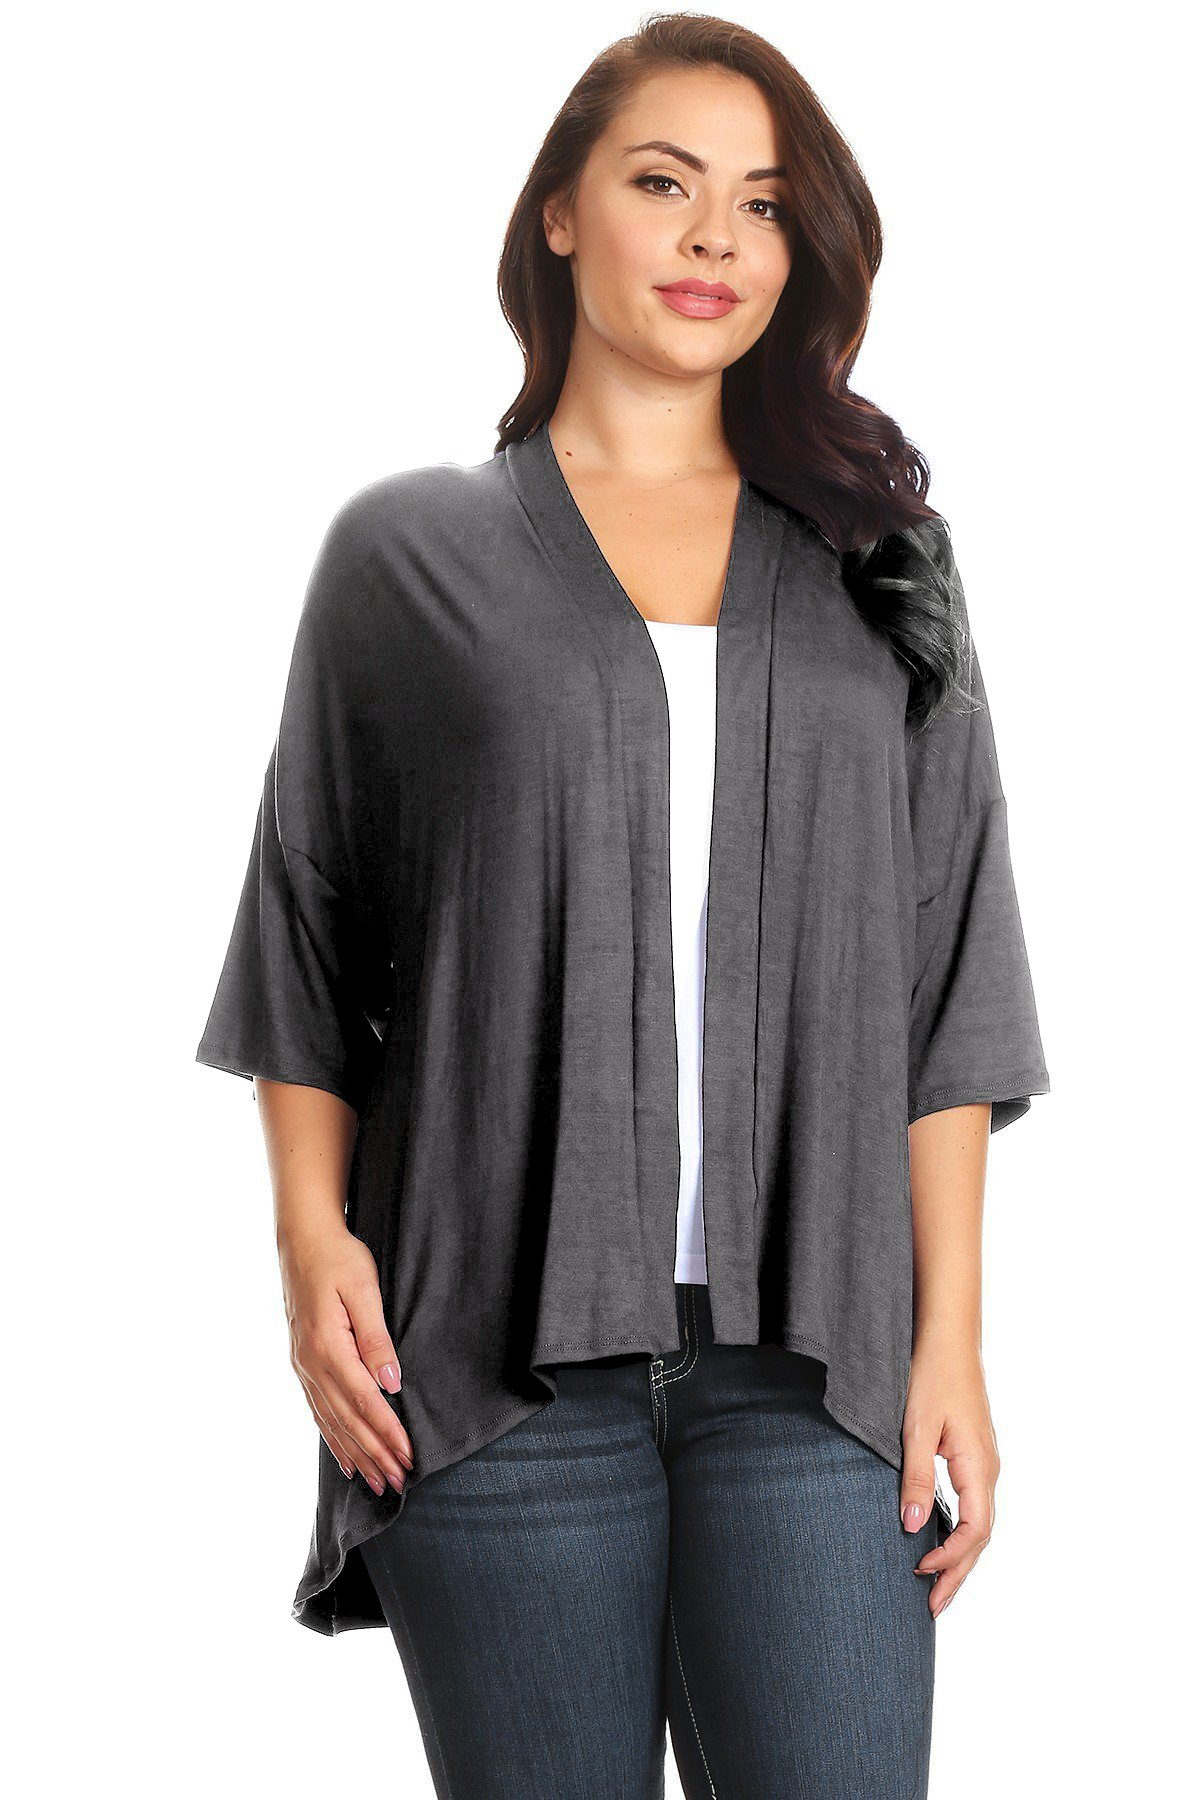 Modern Kiwi Plus Size Solid 3/4 Sleeve Open Front Cardigan Charcoal 3X